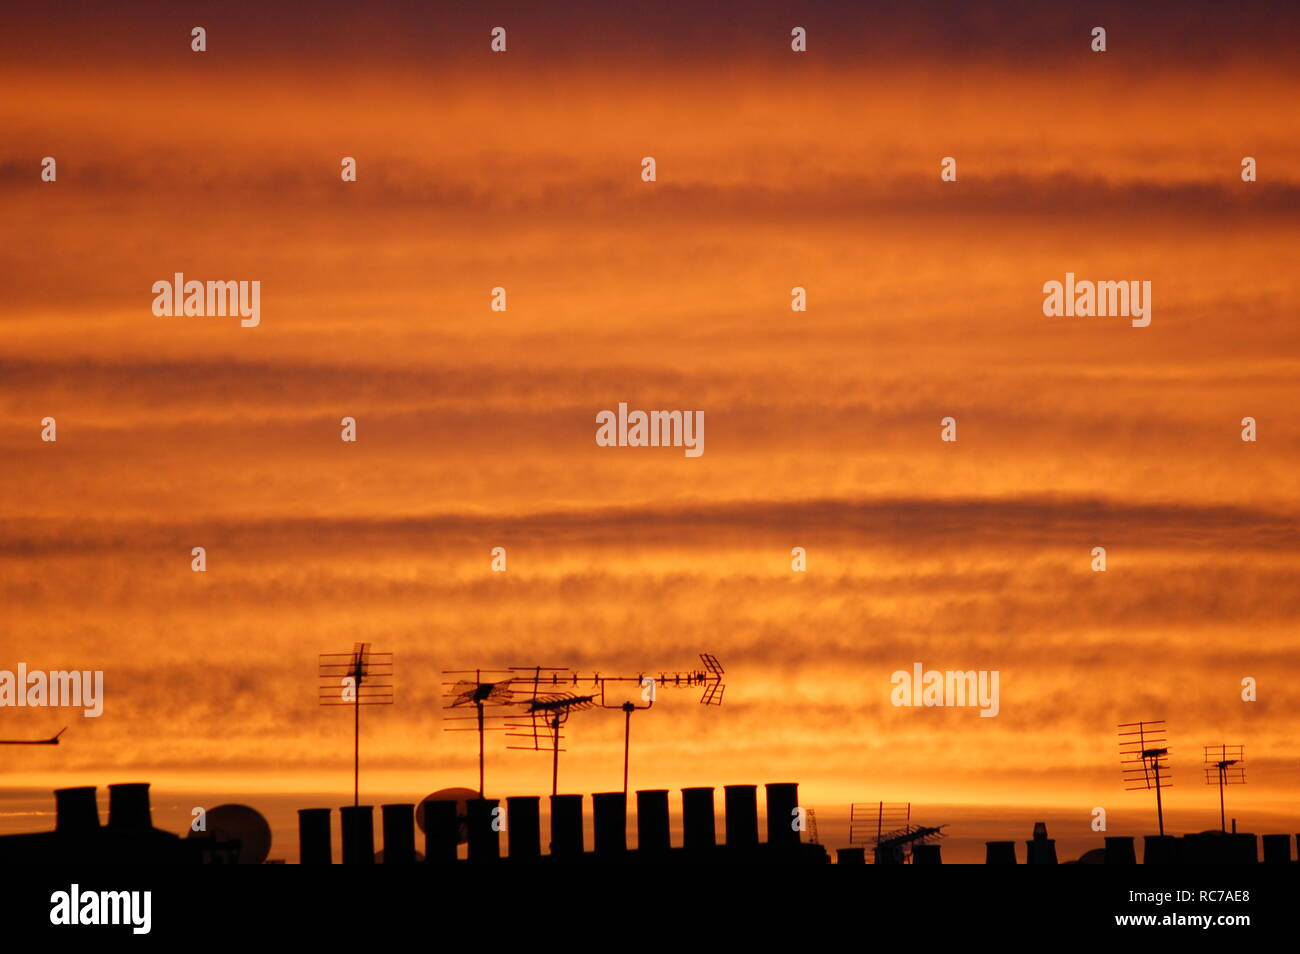 London Dusk Skyscape - Stock Image